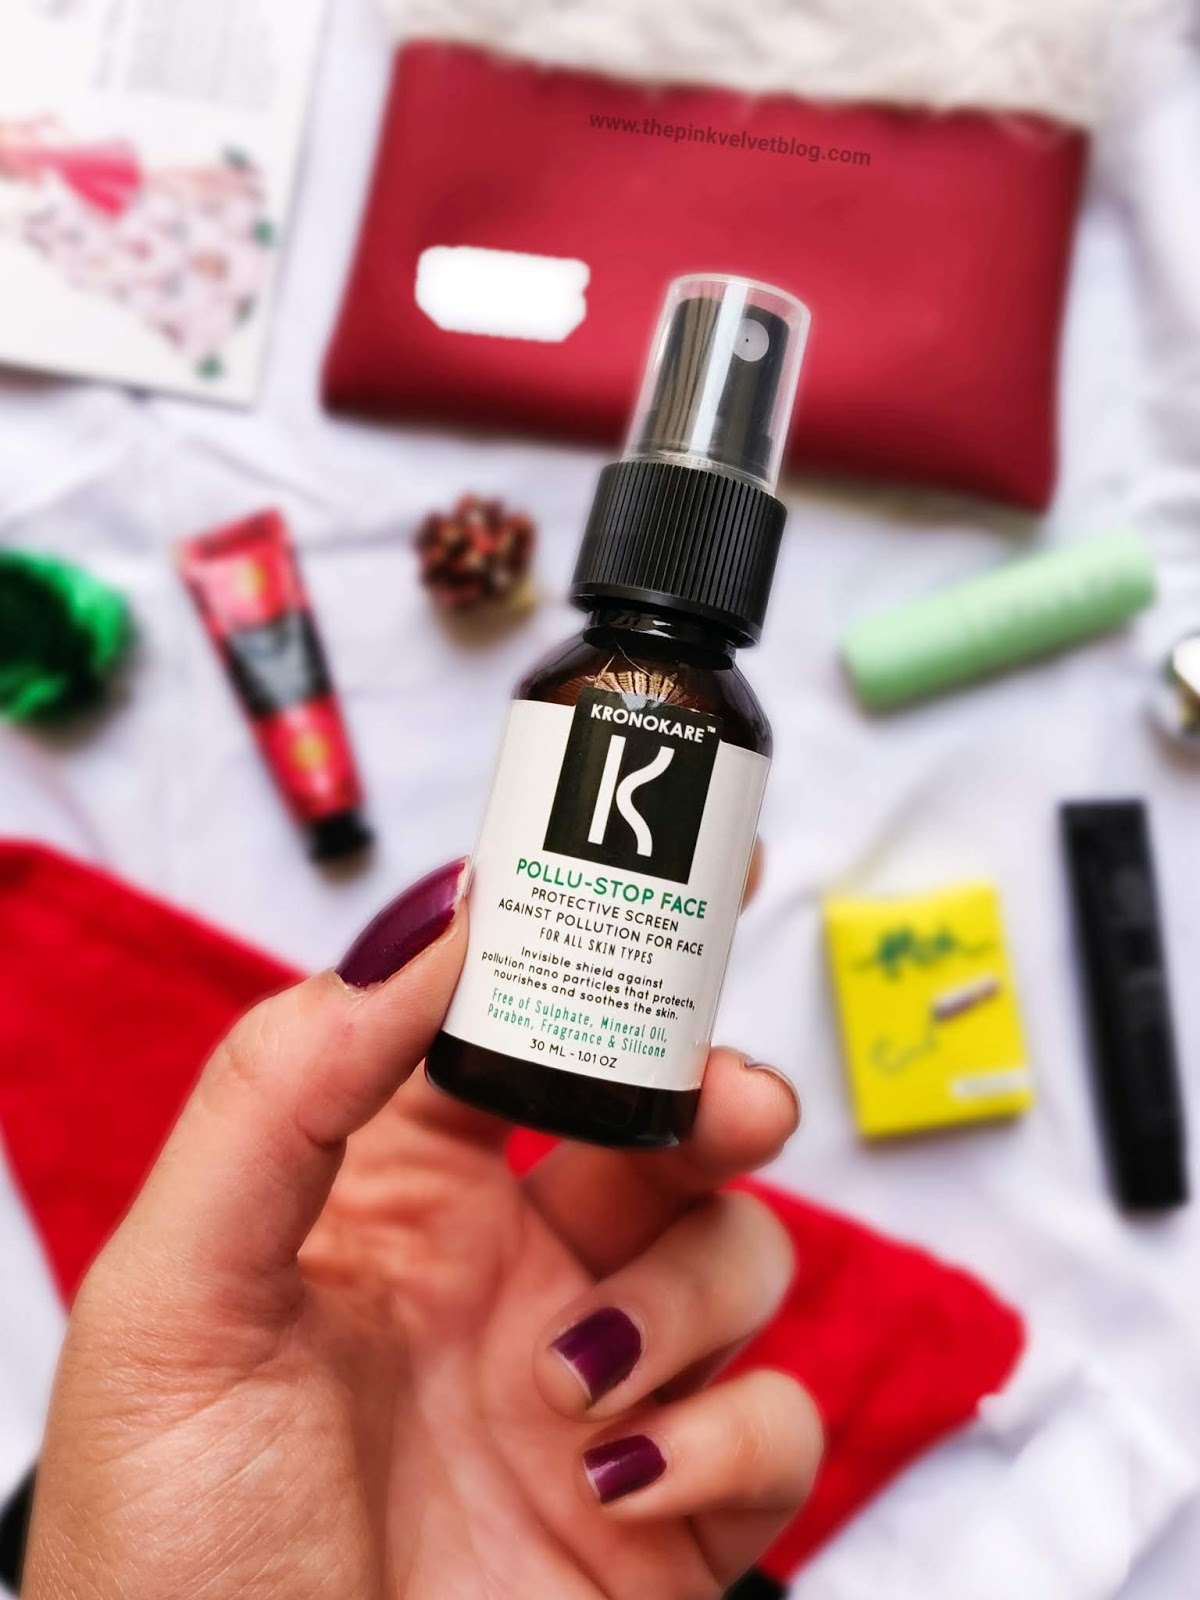 December 2018 FAB BAG Unboxing and Review - Kronokare Pollu-Stop Face Mist